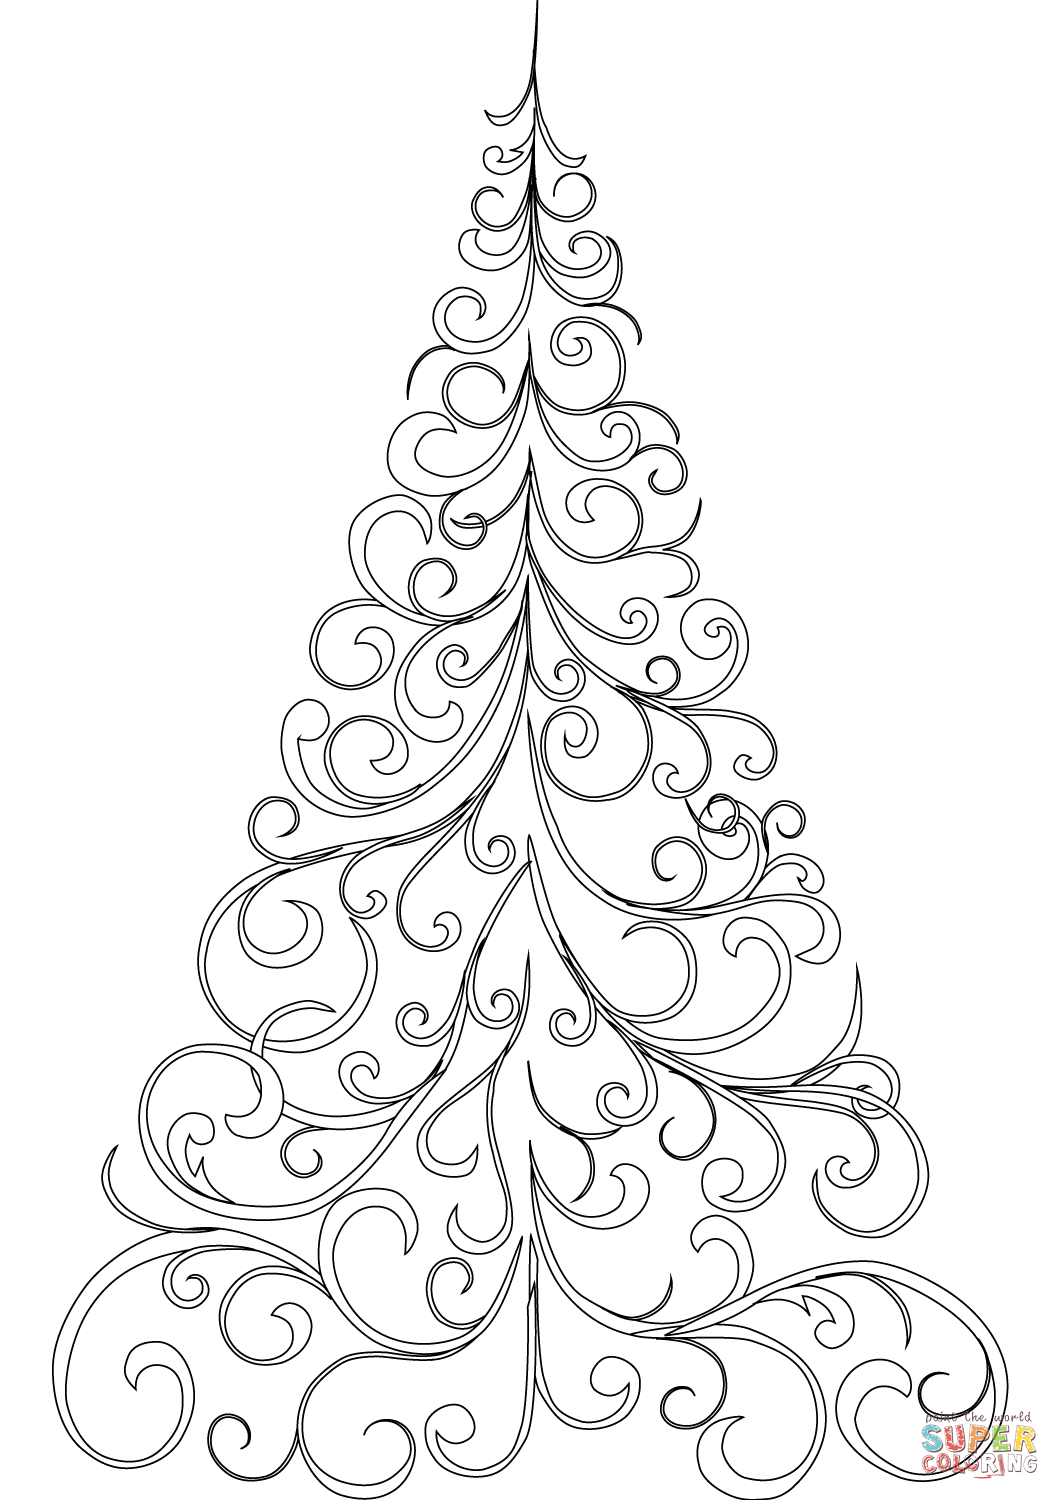 Swirly Christmas Tree coloring page | Free Printable ... | christmas tree coloring pages